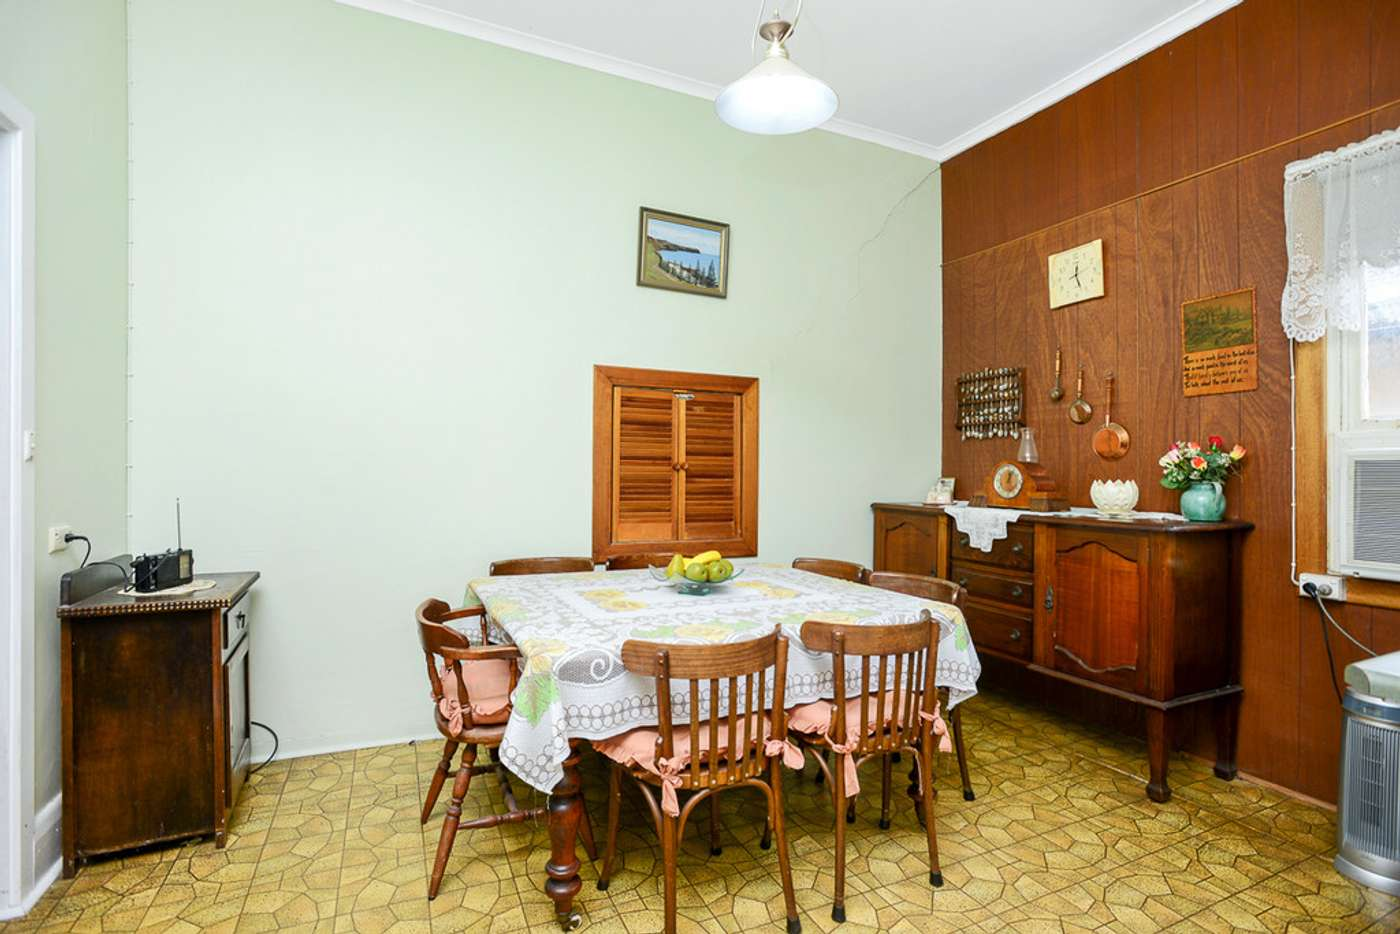 Sixth view of Homely house listing, 21-23 HILL STREET, Victor Harbor SA 5211